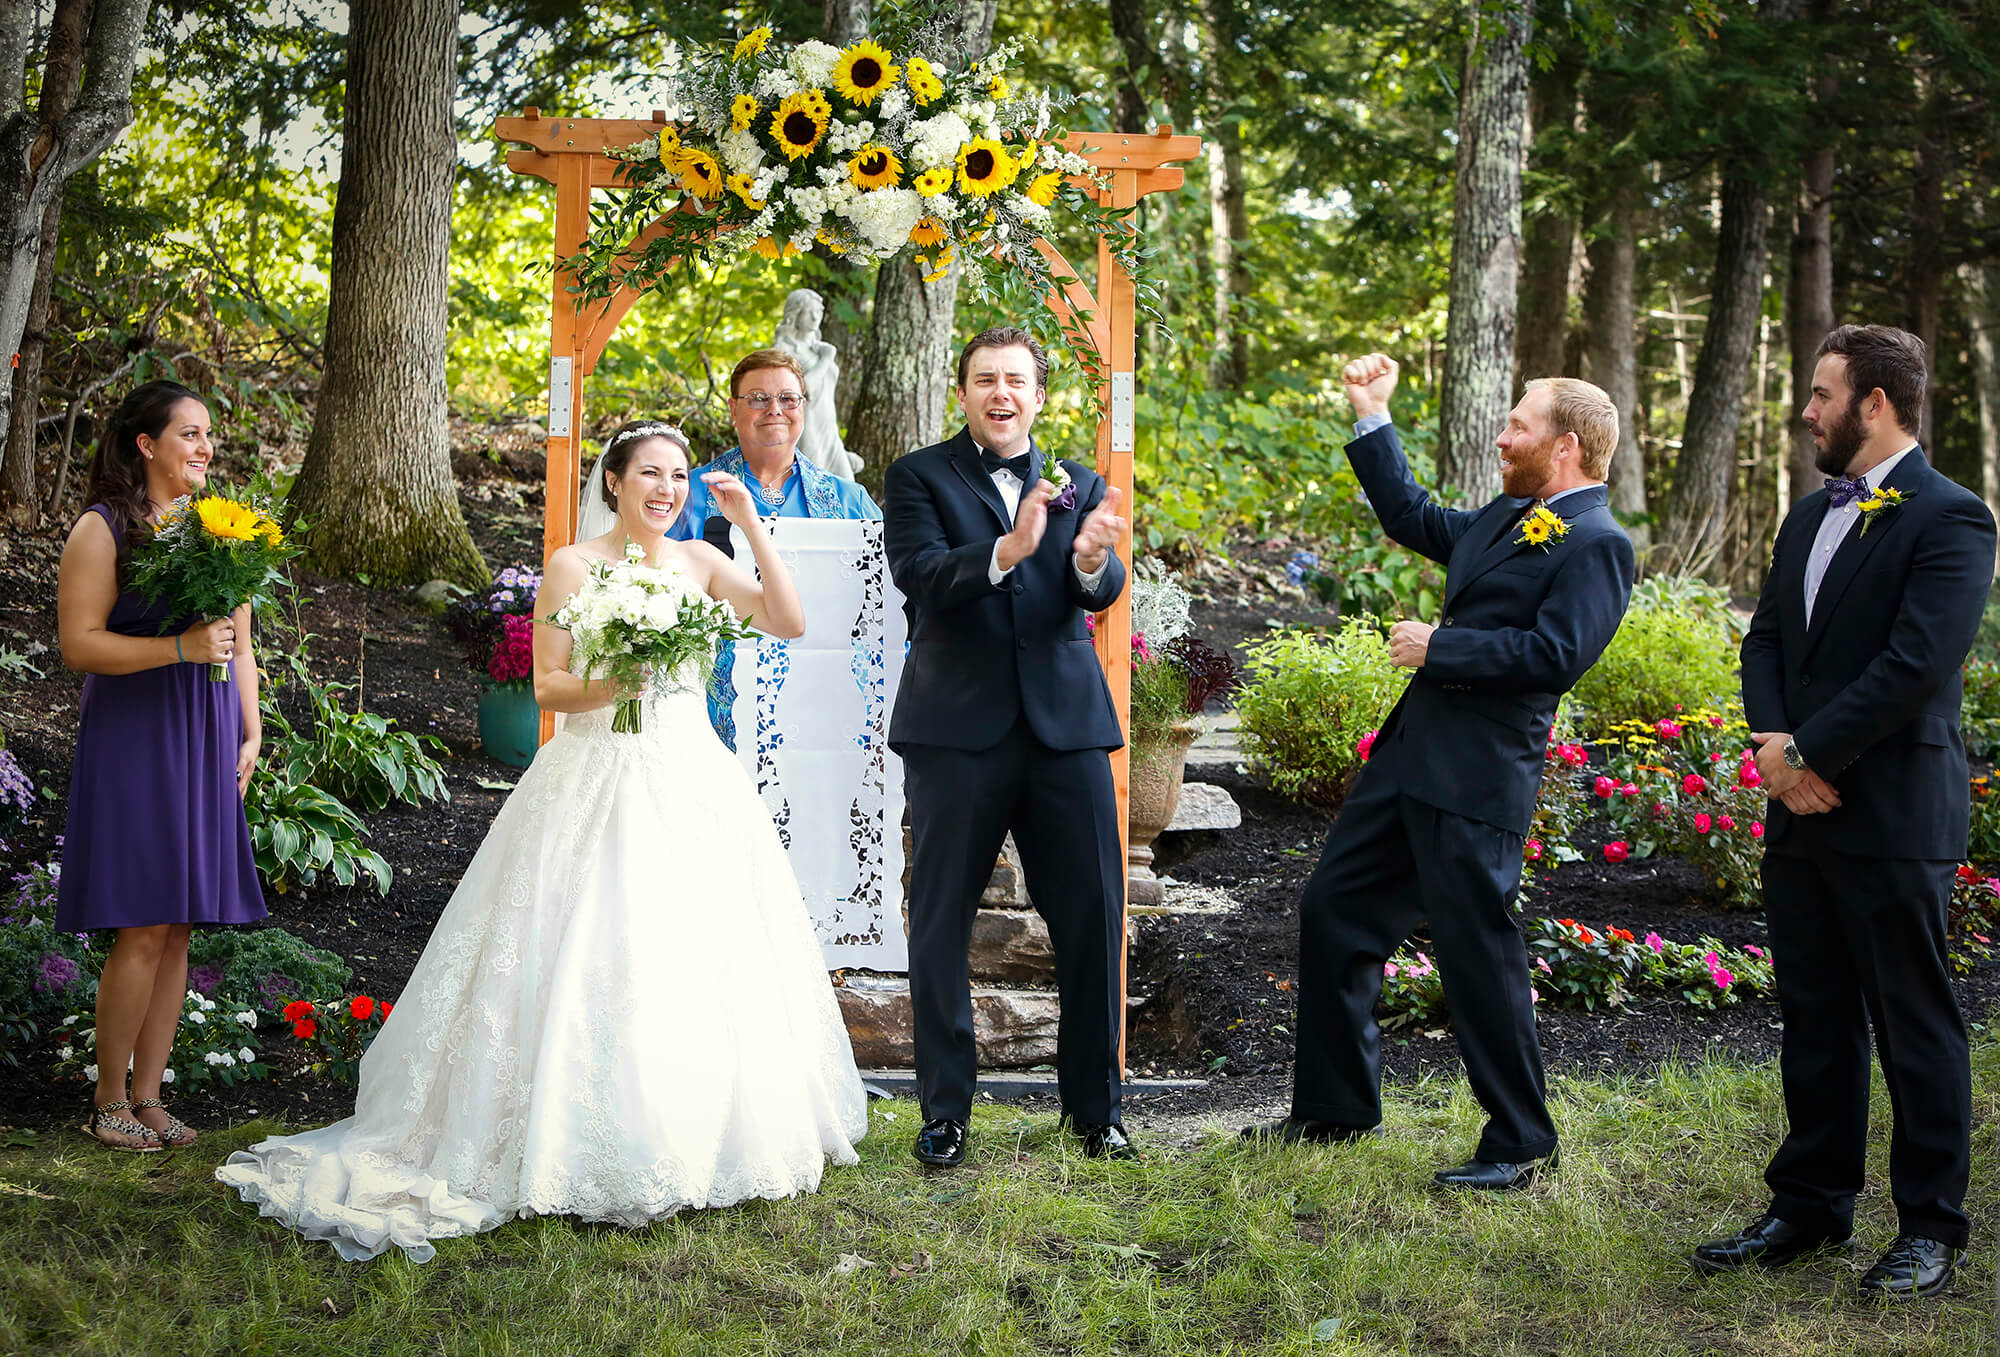 Wedding photography of the couple and bridal party celebrating during the ceremony